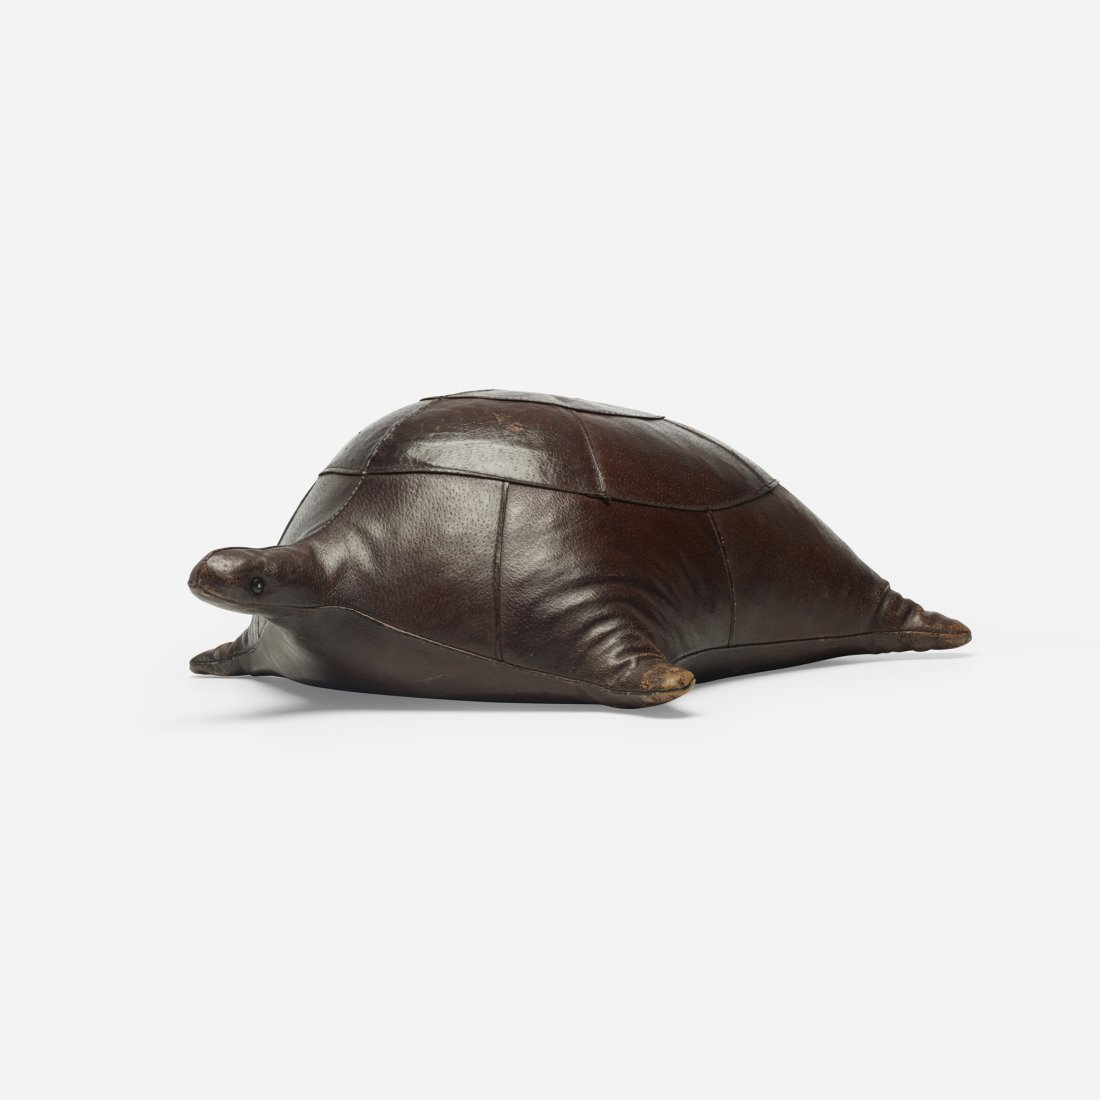 Abercrombie & Fitch, attribution leather turtle